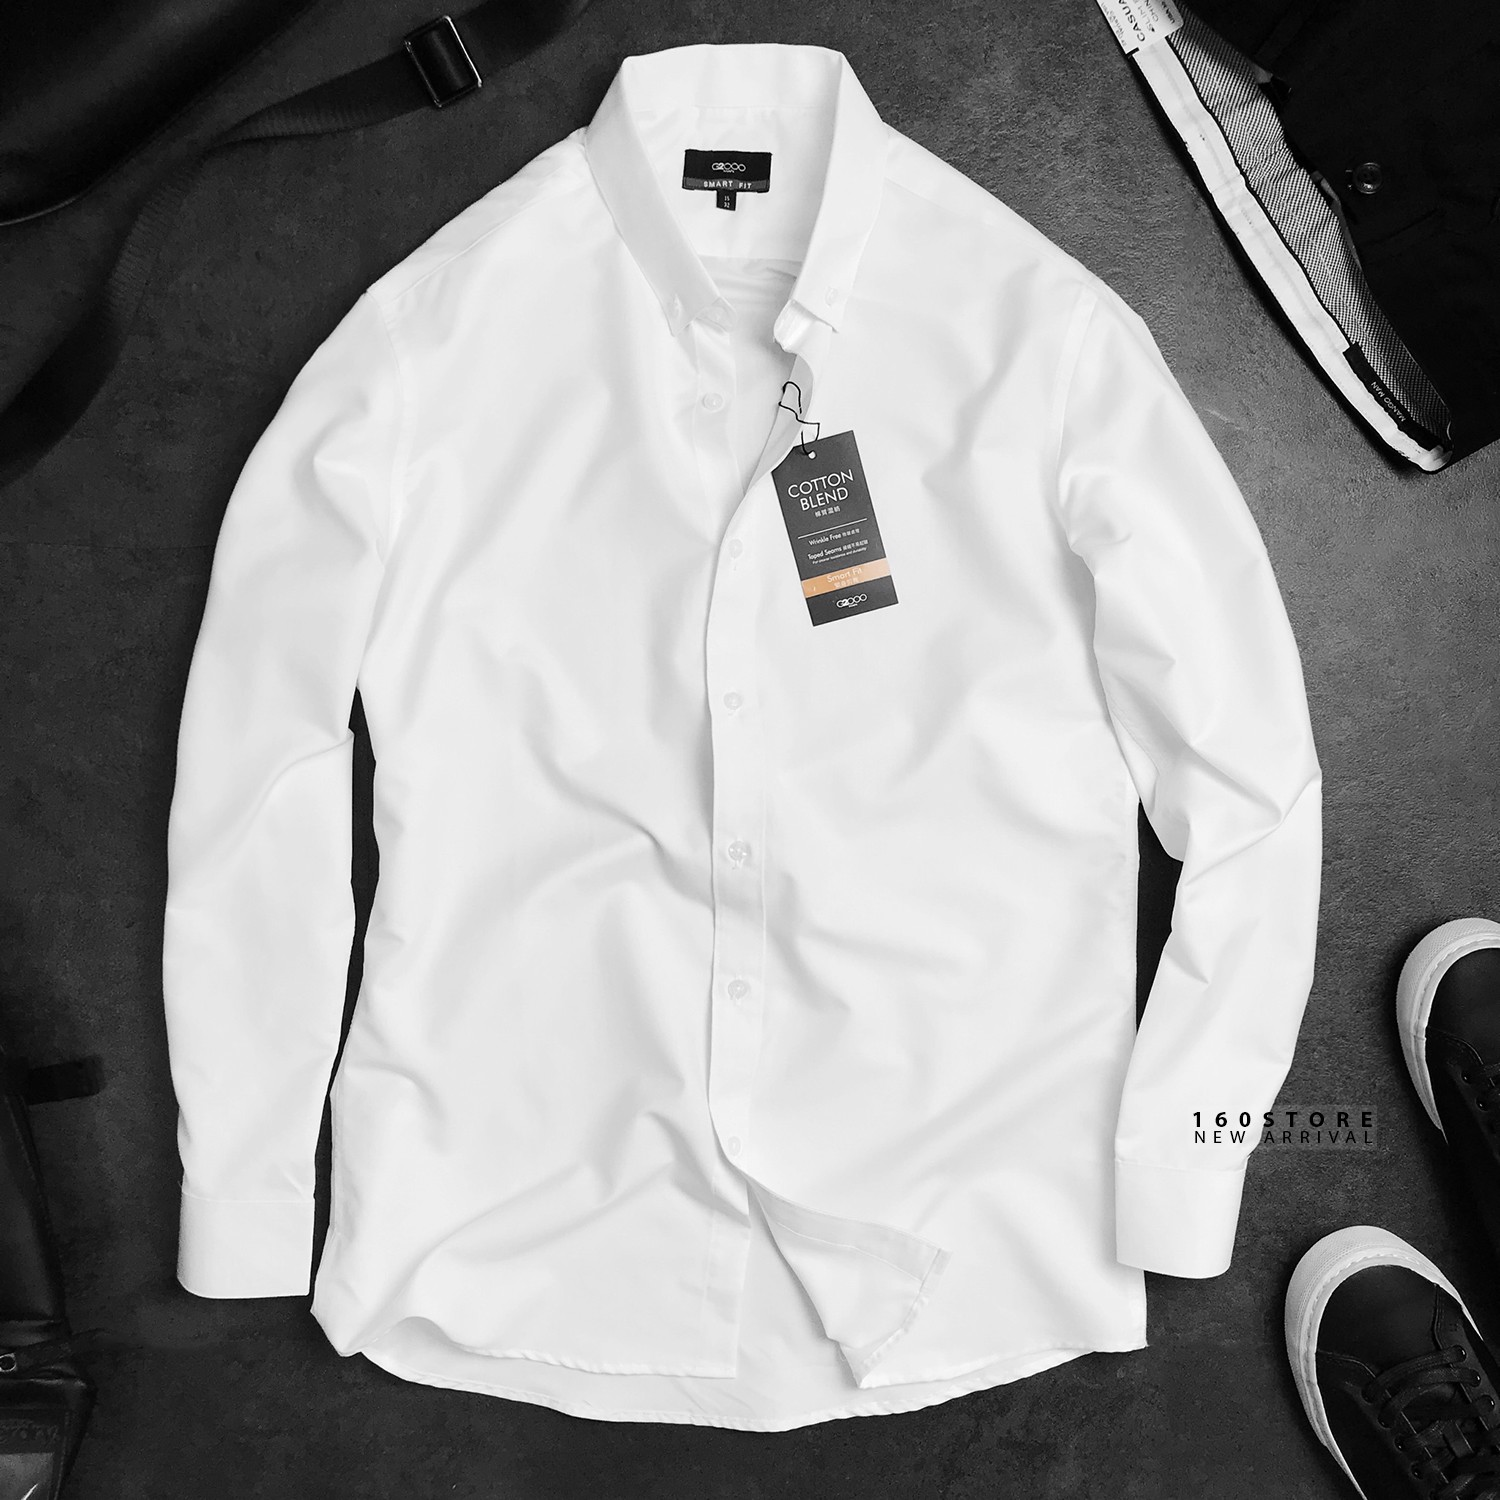 G.2000 Slim Fit Shirts